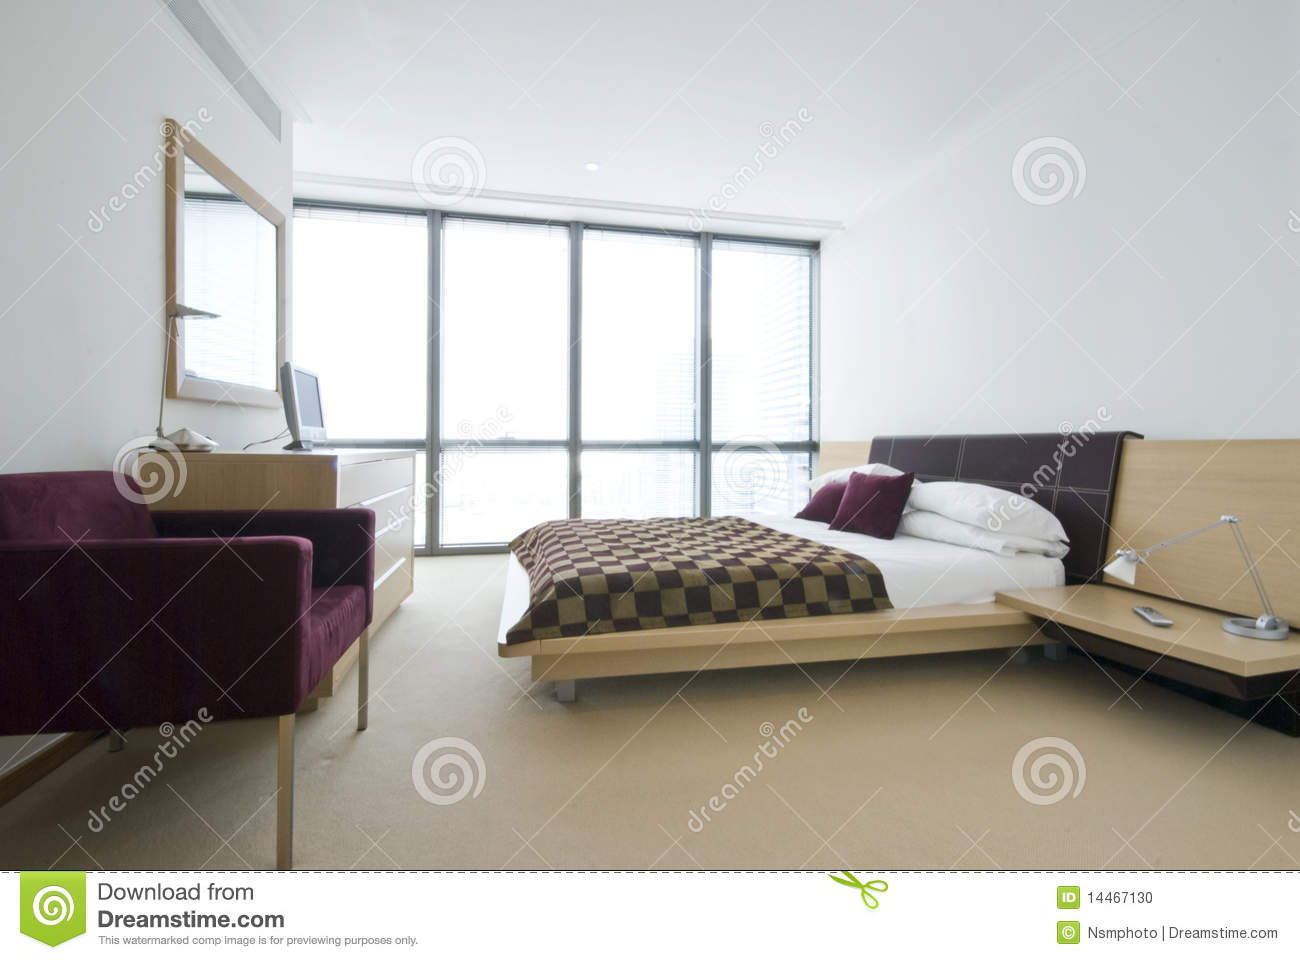 Modern Double Bedroom With King Size Bed Stock Photo - Image: 14467130